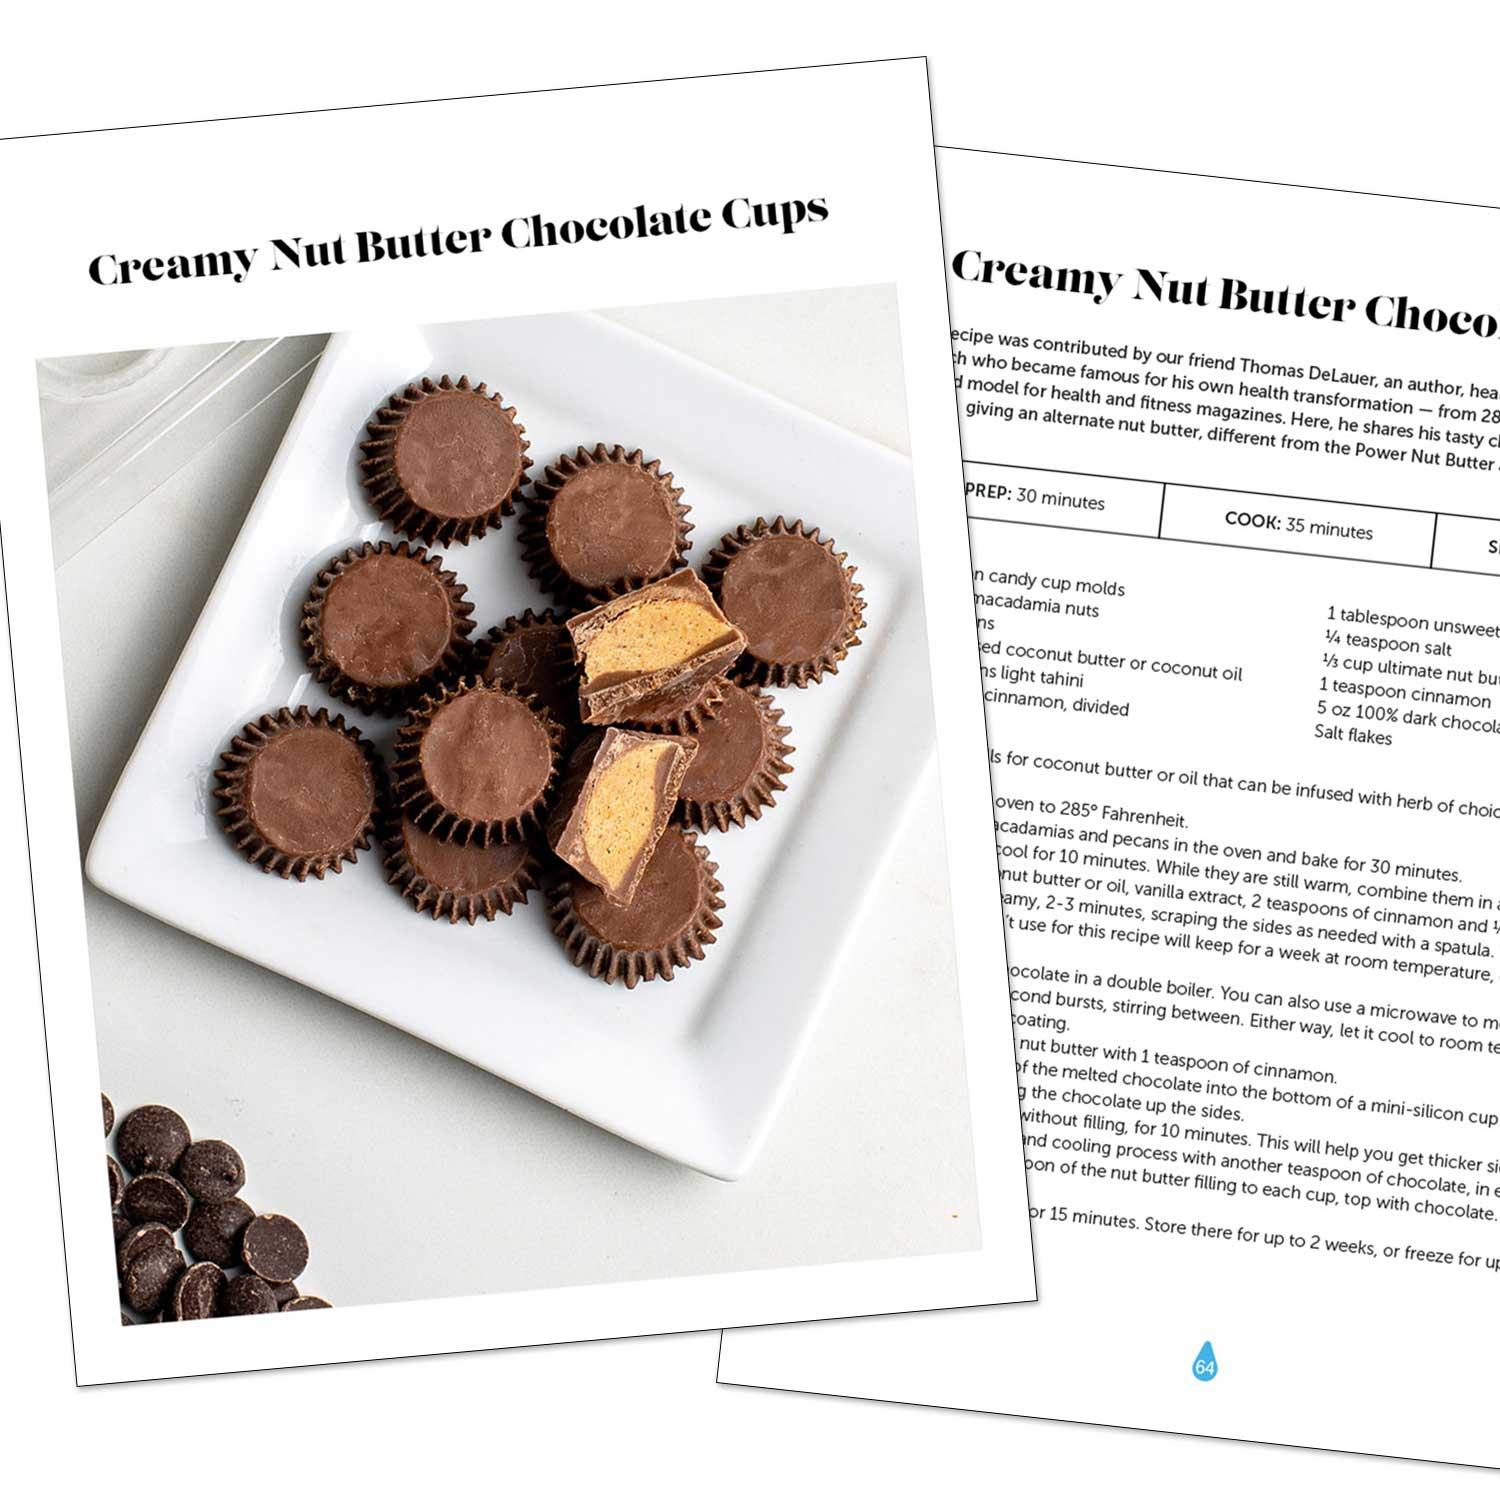 Creamy Peanut Butter Chocolate Cups that are infused, ketogenic, AND gluten-free?! Get the recipe for these keto chocolate peanut butter cups when you get LEVO's keto digital cookbook PDF download. Enjoy dessert once in a while with these tasty sweets. Download the cookbook from LEVO oil today and start living a healthier life with the keto diet.